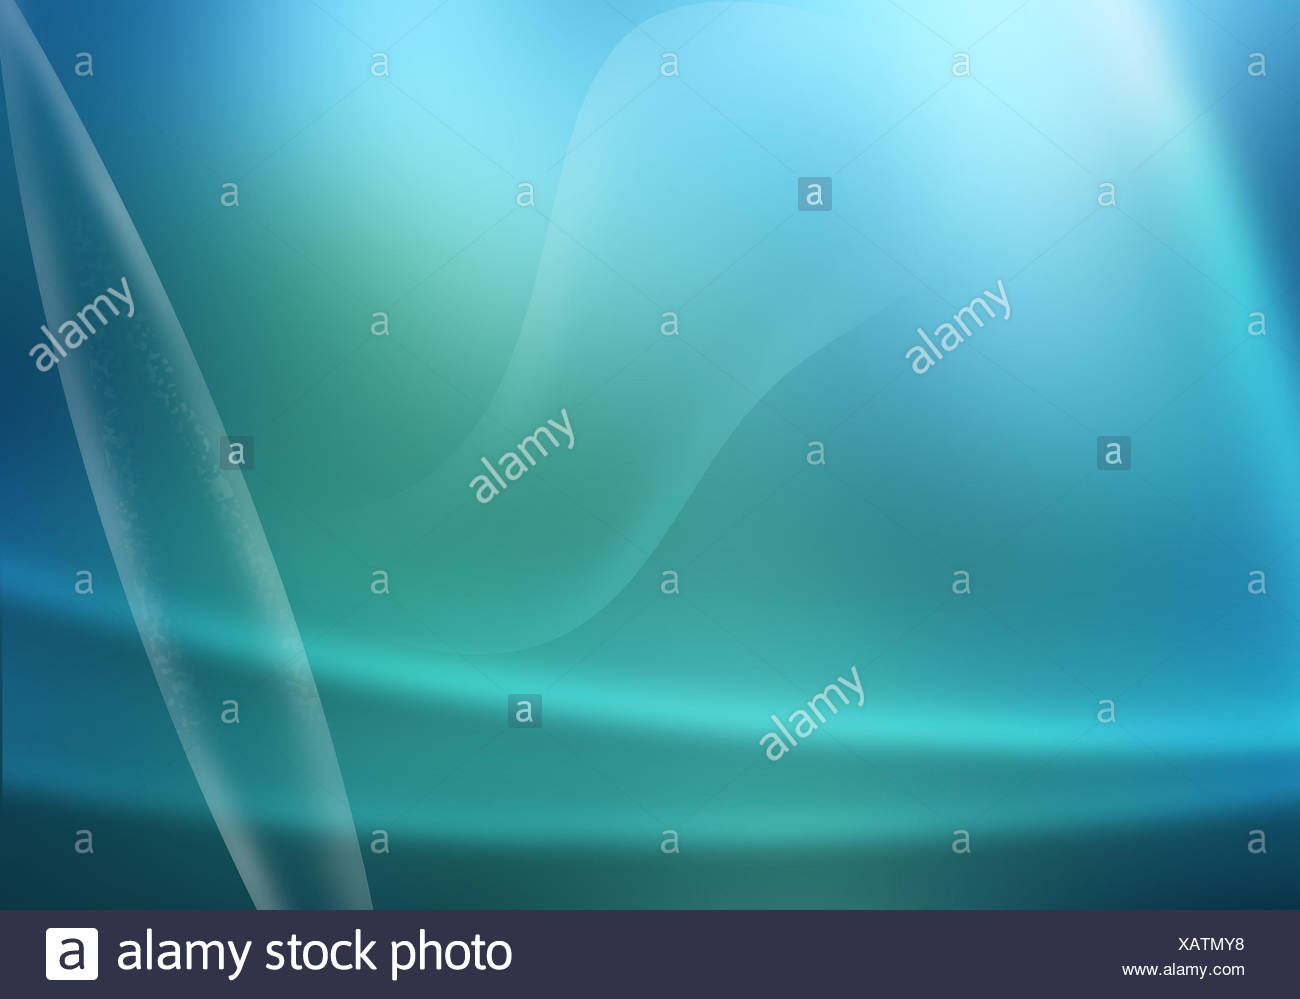 Powerpoint Background Stockfotos & Powerpoint Background Bilder - Alamy